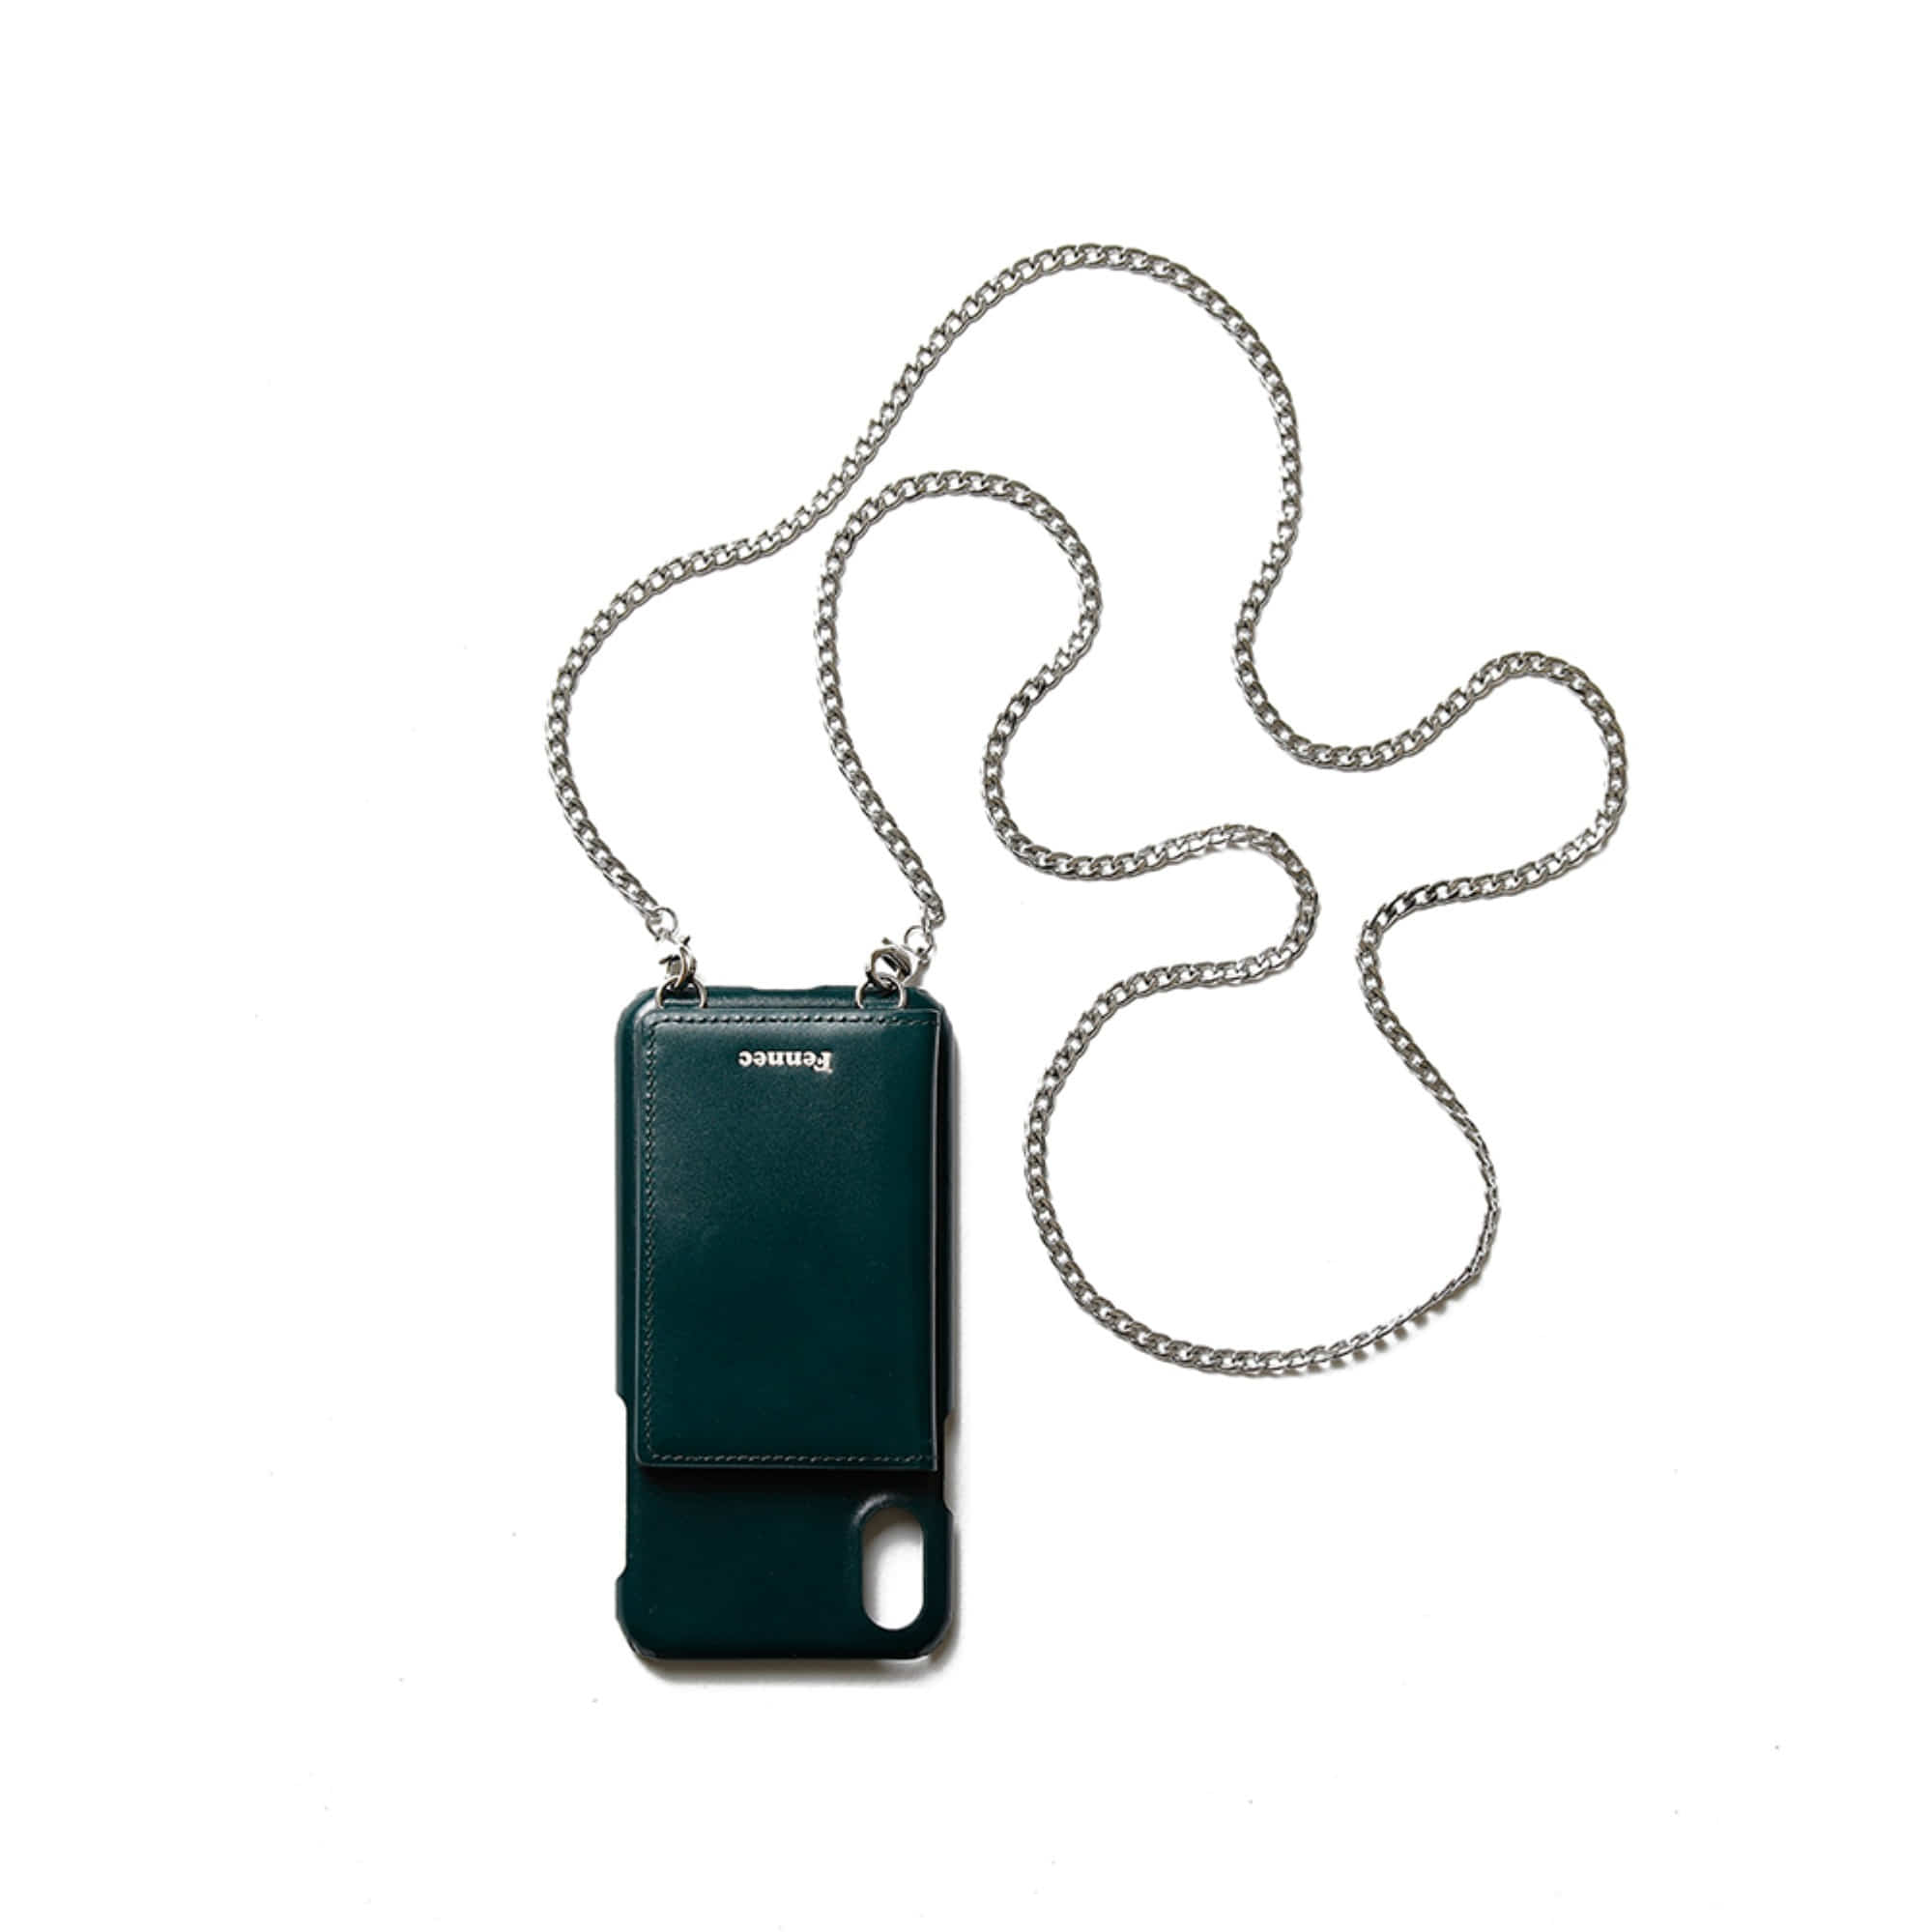 [DISCONTINUE] LEATHER iPHONE X/XS STRAP POCKET CASE - MOSS GREEN